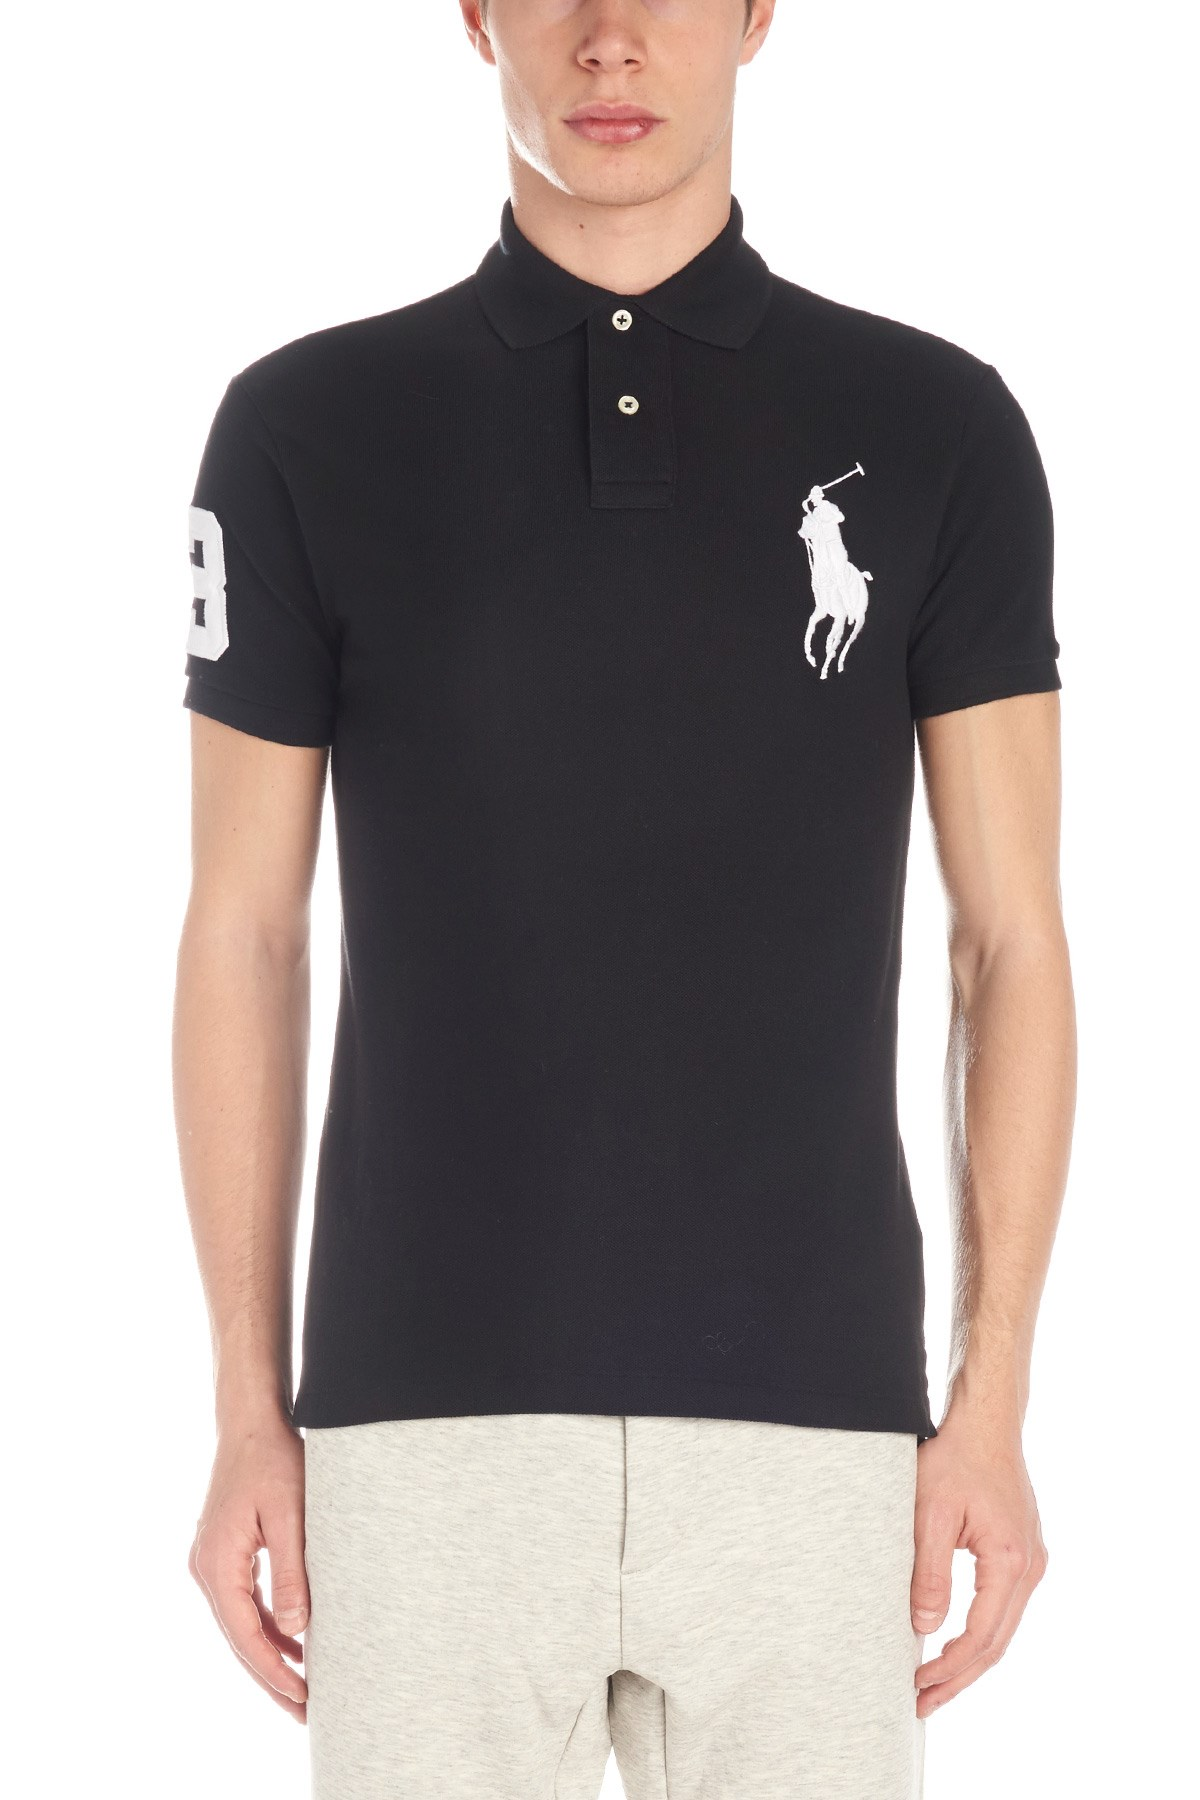 polo ralph lauren  Big pony player  polo available on julian-fashion ... 55f22a42e77d5